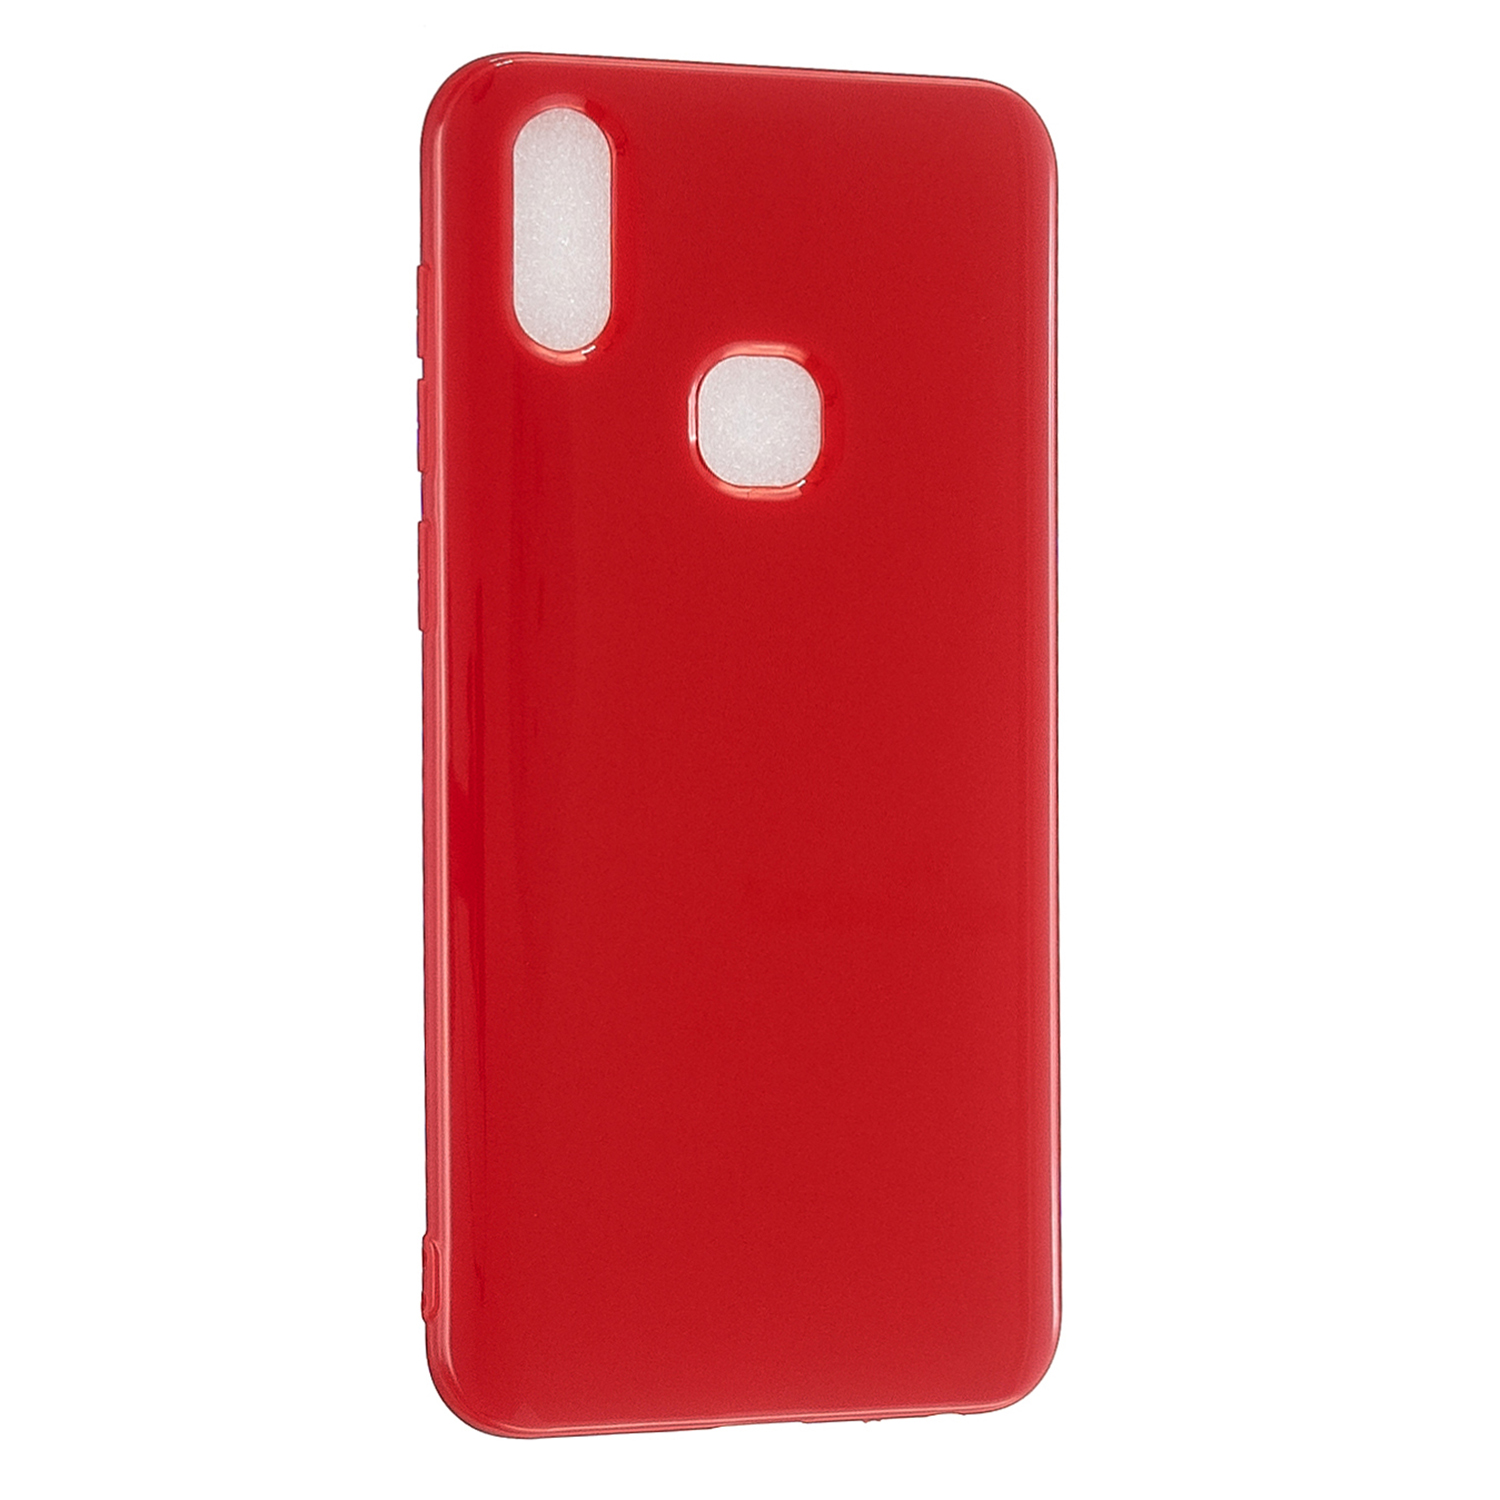 for VIVO Y17/Y3 / Y91/Y95/Y93 Thicken 2.0mm TPU Back Cover Cellphone Case Shell red